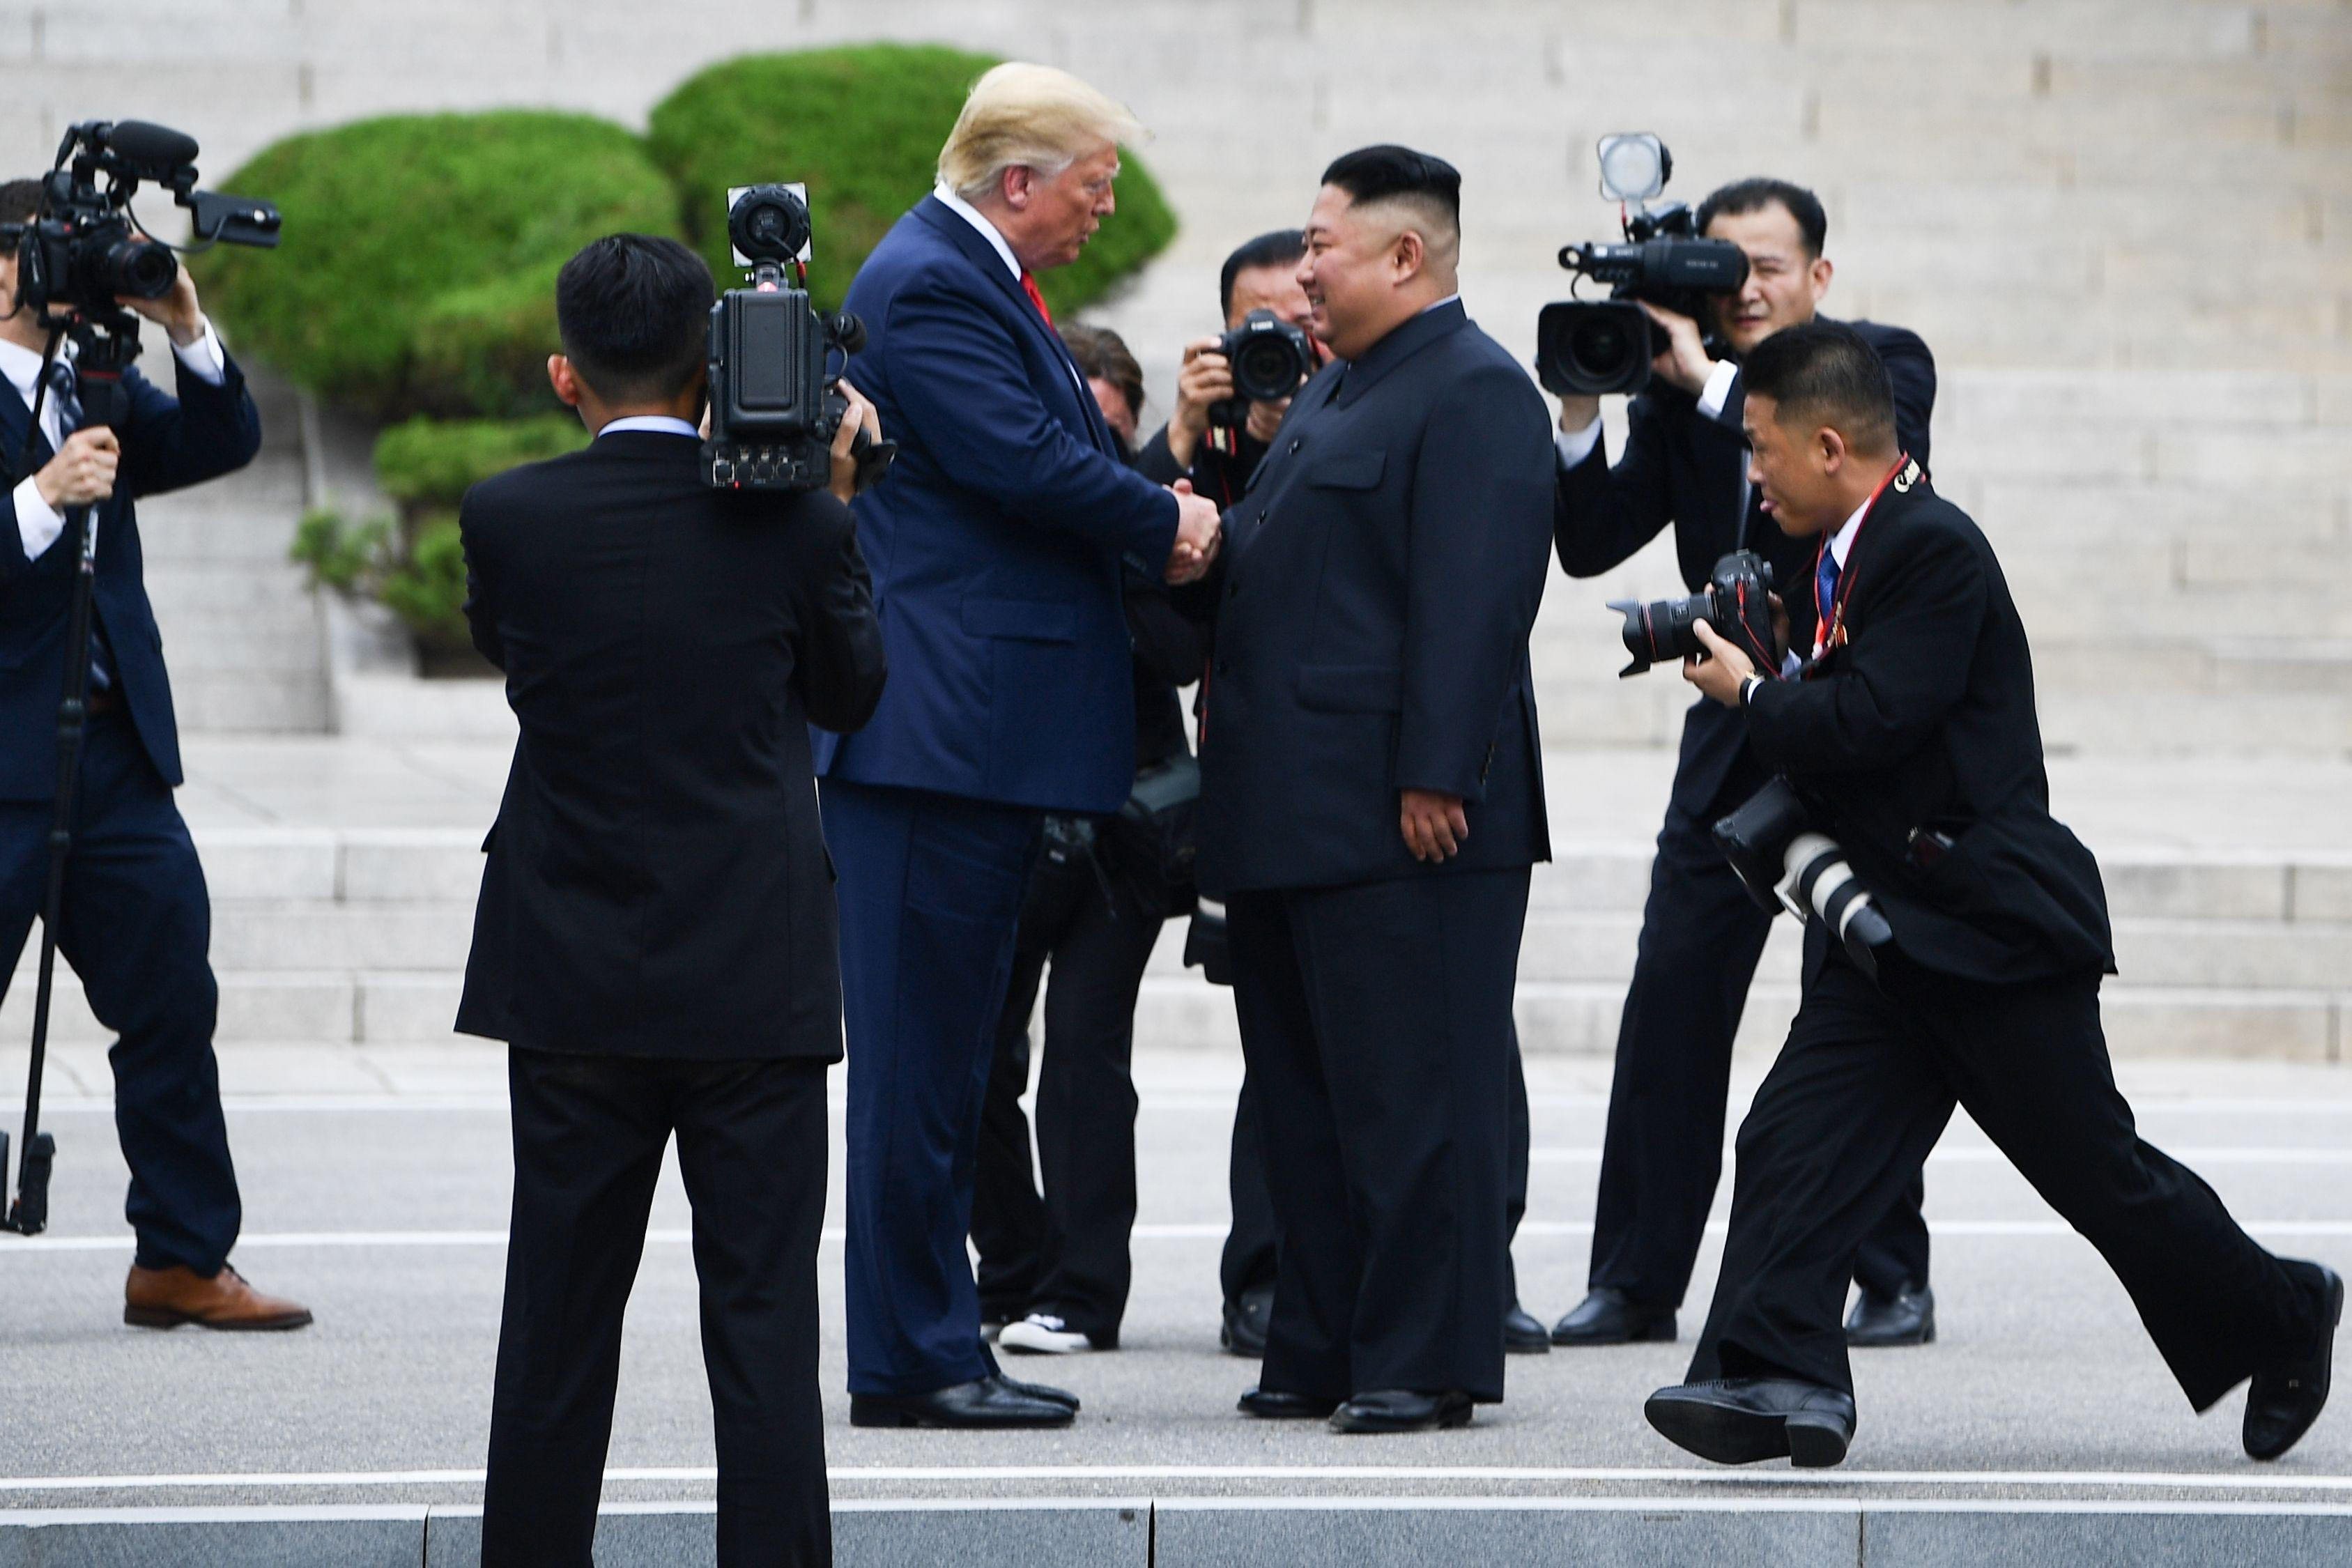 For reasons good and bad, Donald Trump seems to have an affinity with Kim Jong Un